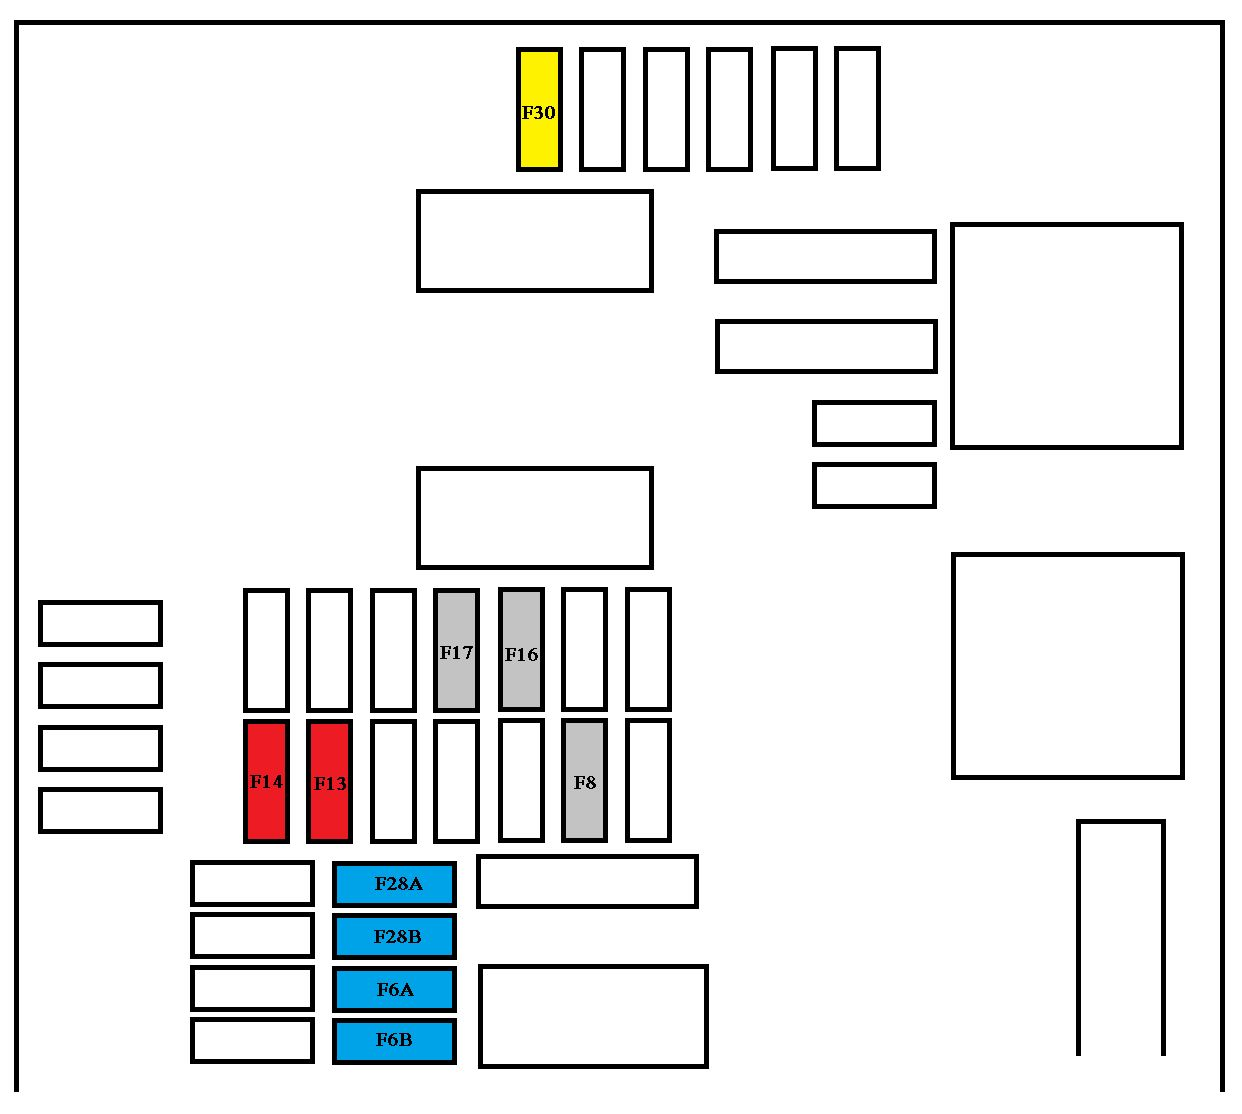 Peugeot 407 Fuse Box Layout